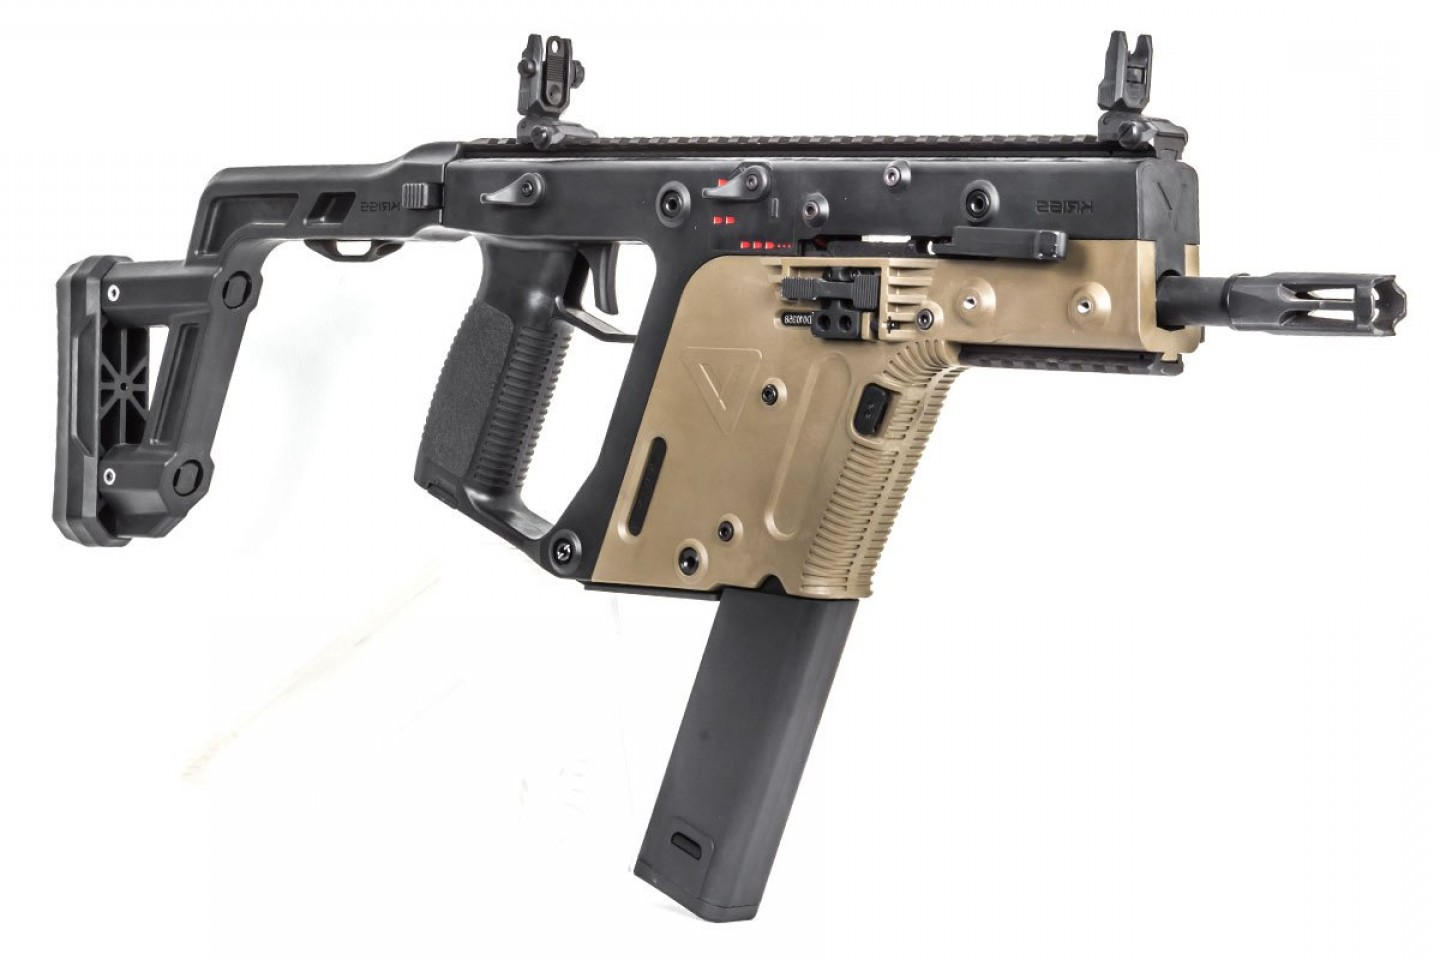 Custom Kriss Vector Airsoft Firing: Krytac Kriss Vector Aeg Airsoft Smg Option